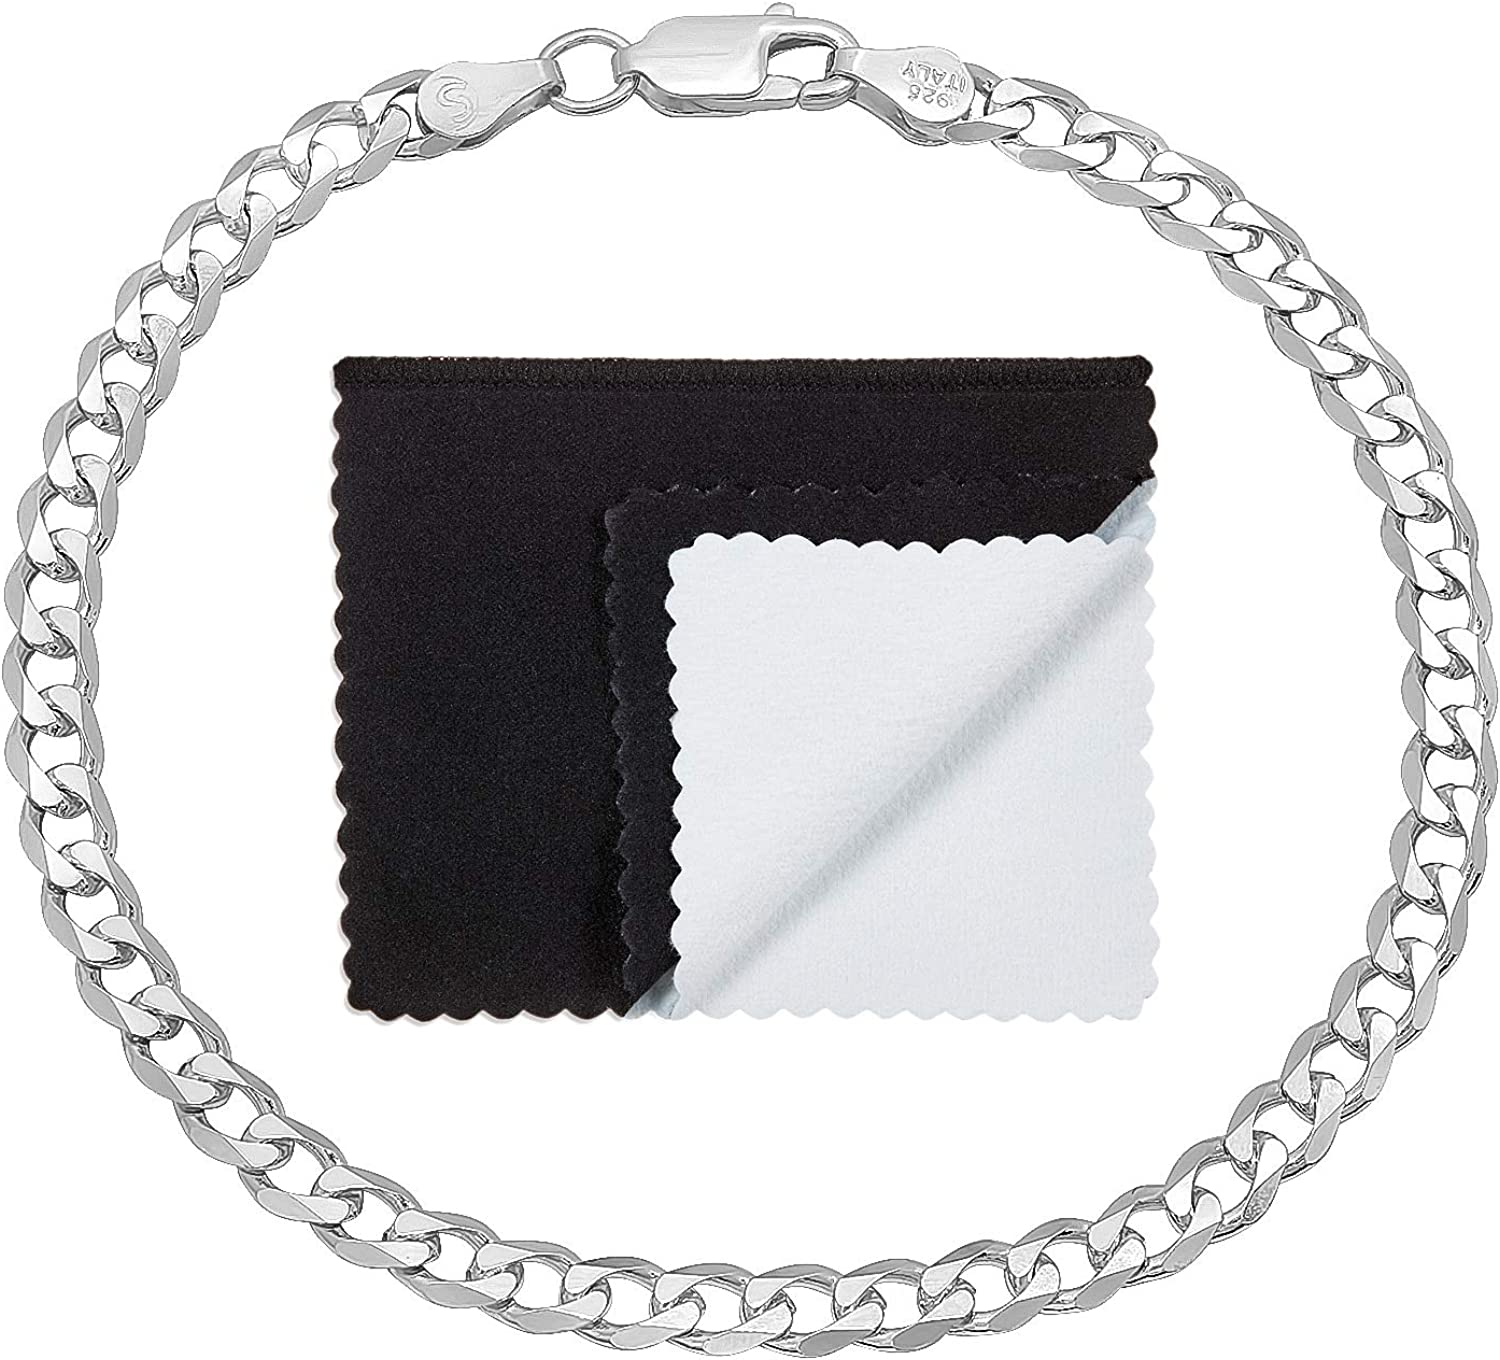 1mm-16mm Solid OFFicial .925 Sterling Silver Flat Link Cuban N online shop Curb Chain